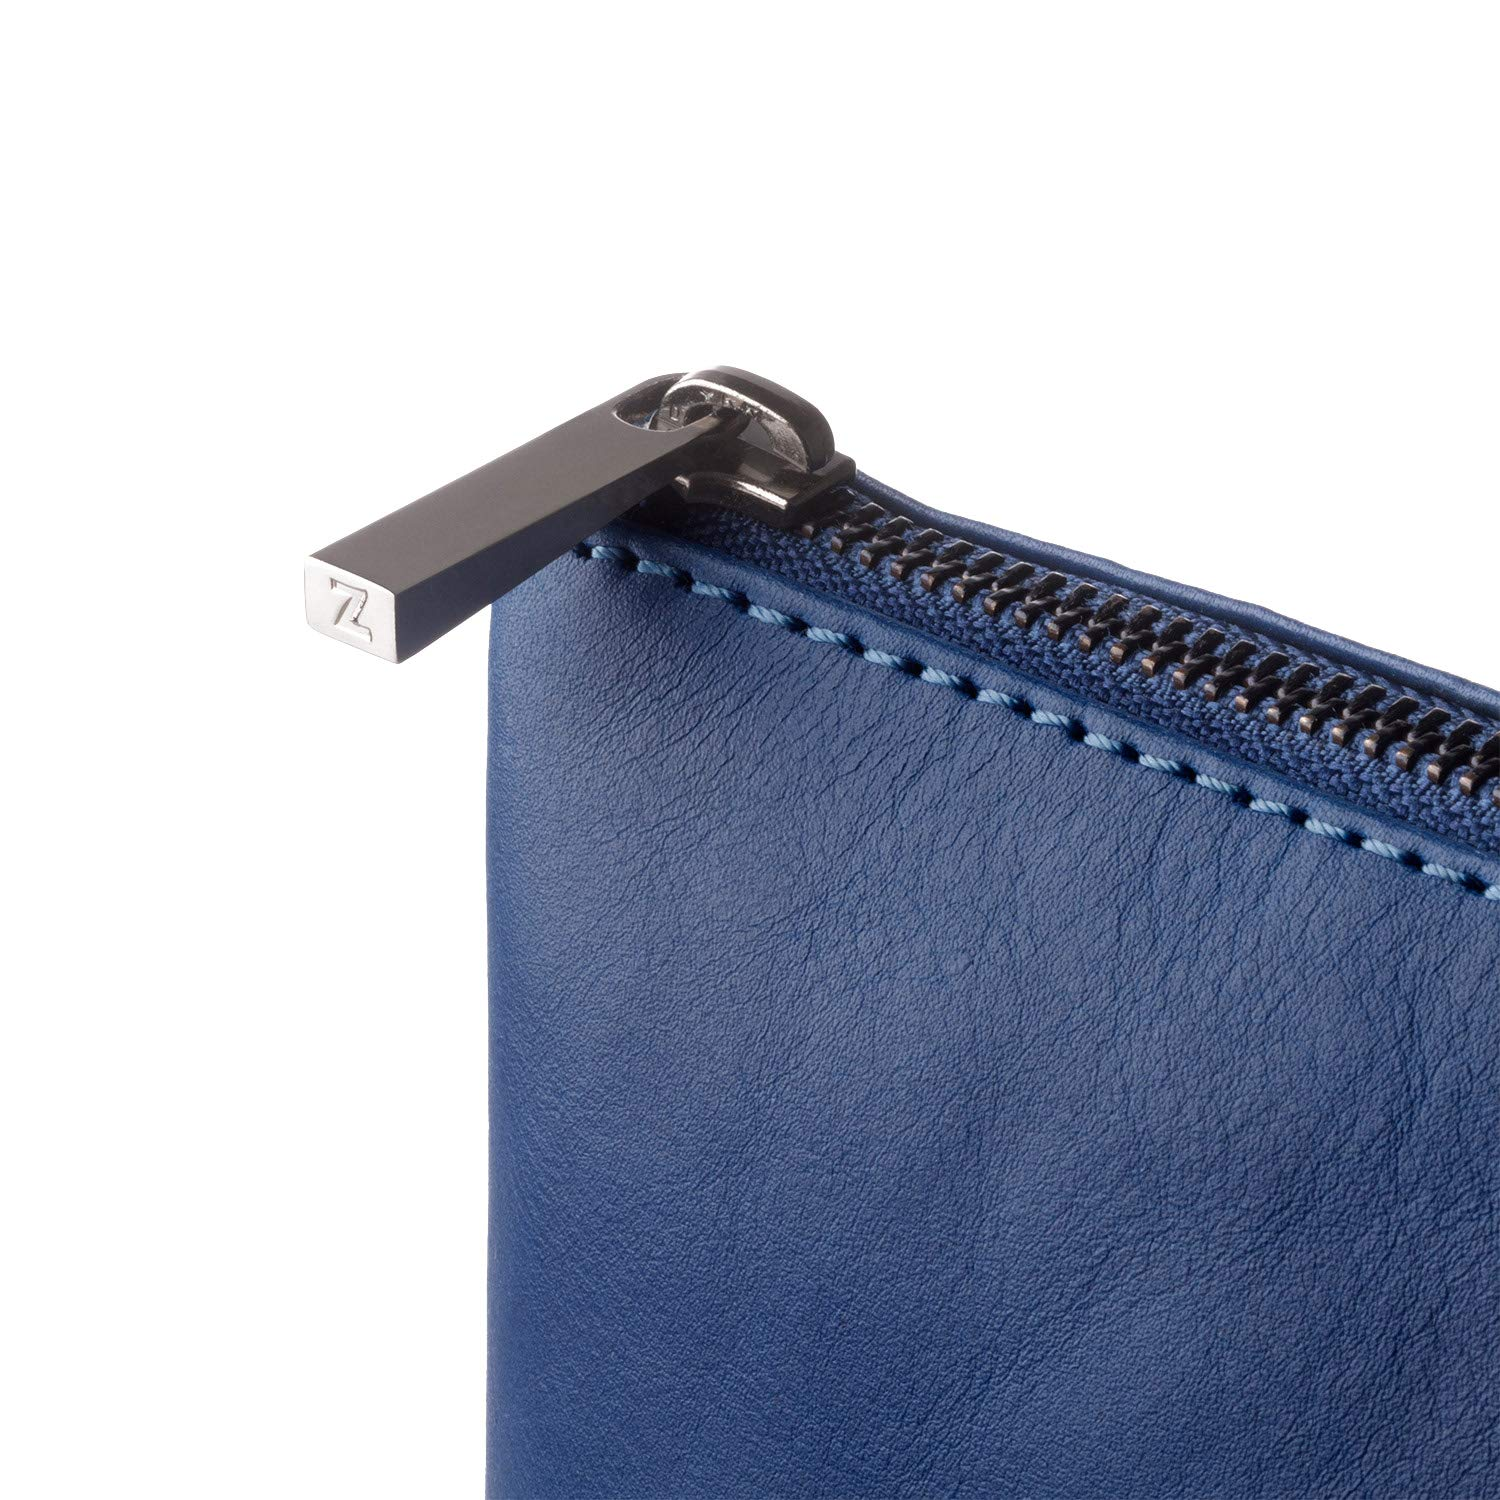 DUDU Clutch Bag Purse with Handle for ladies and men in Real Leather Slim & Large Handbag with Zipper closure - Isa - Blue by DuDu (Image #7)